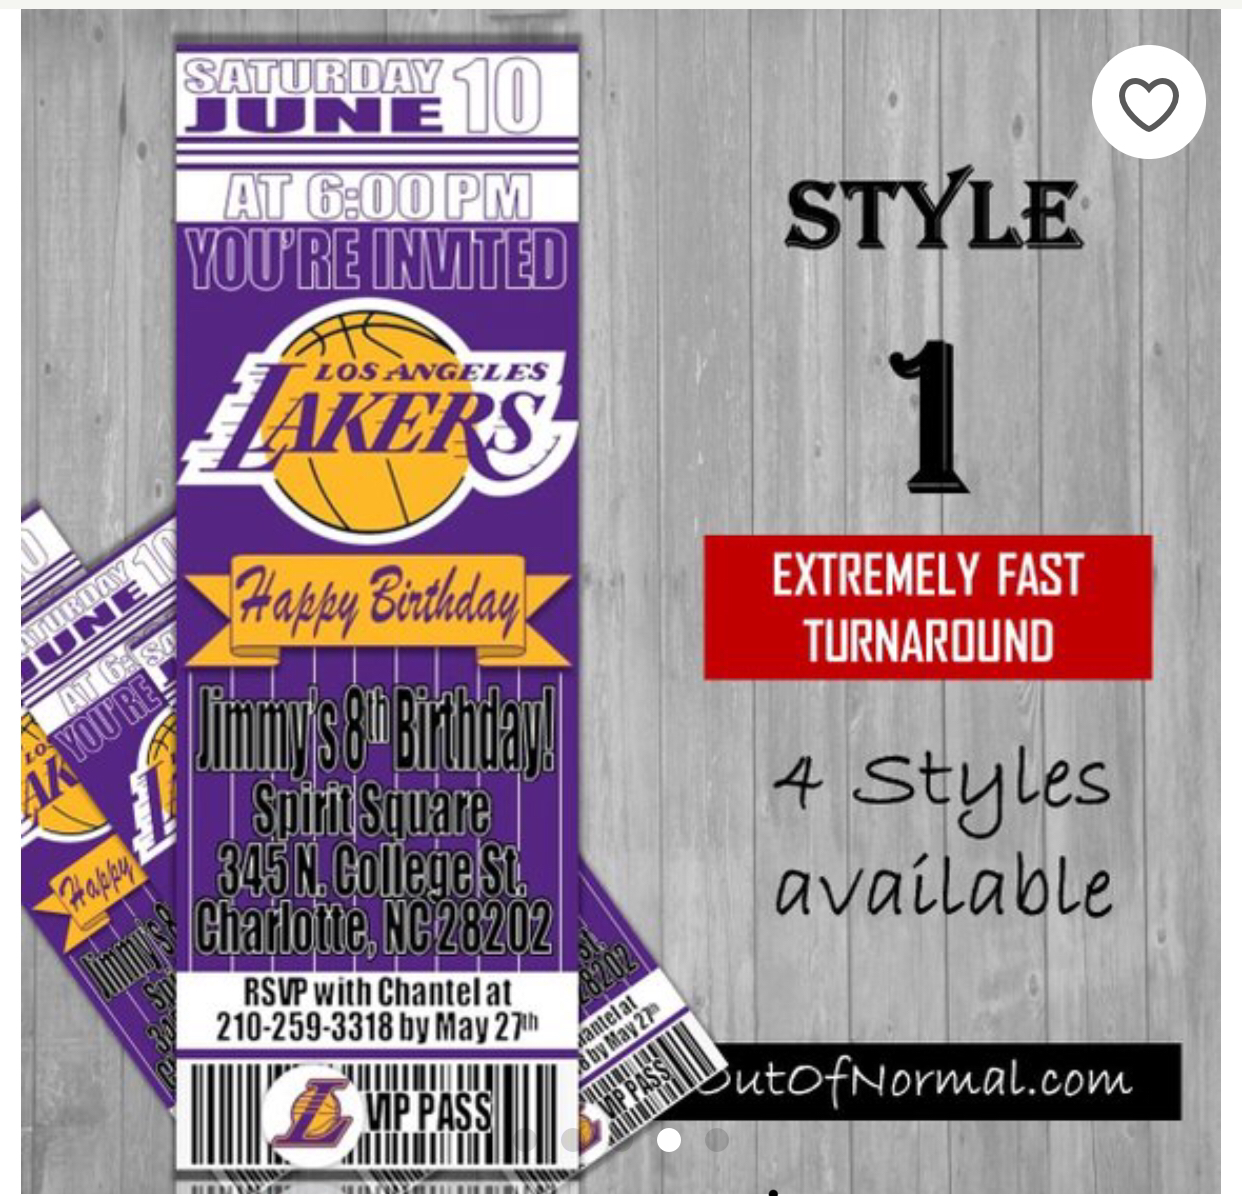 Los Angeles Lakers Basketball Ticket Style Invitation Invitations Basketball Tickets Birthday Invitations